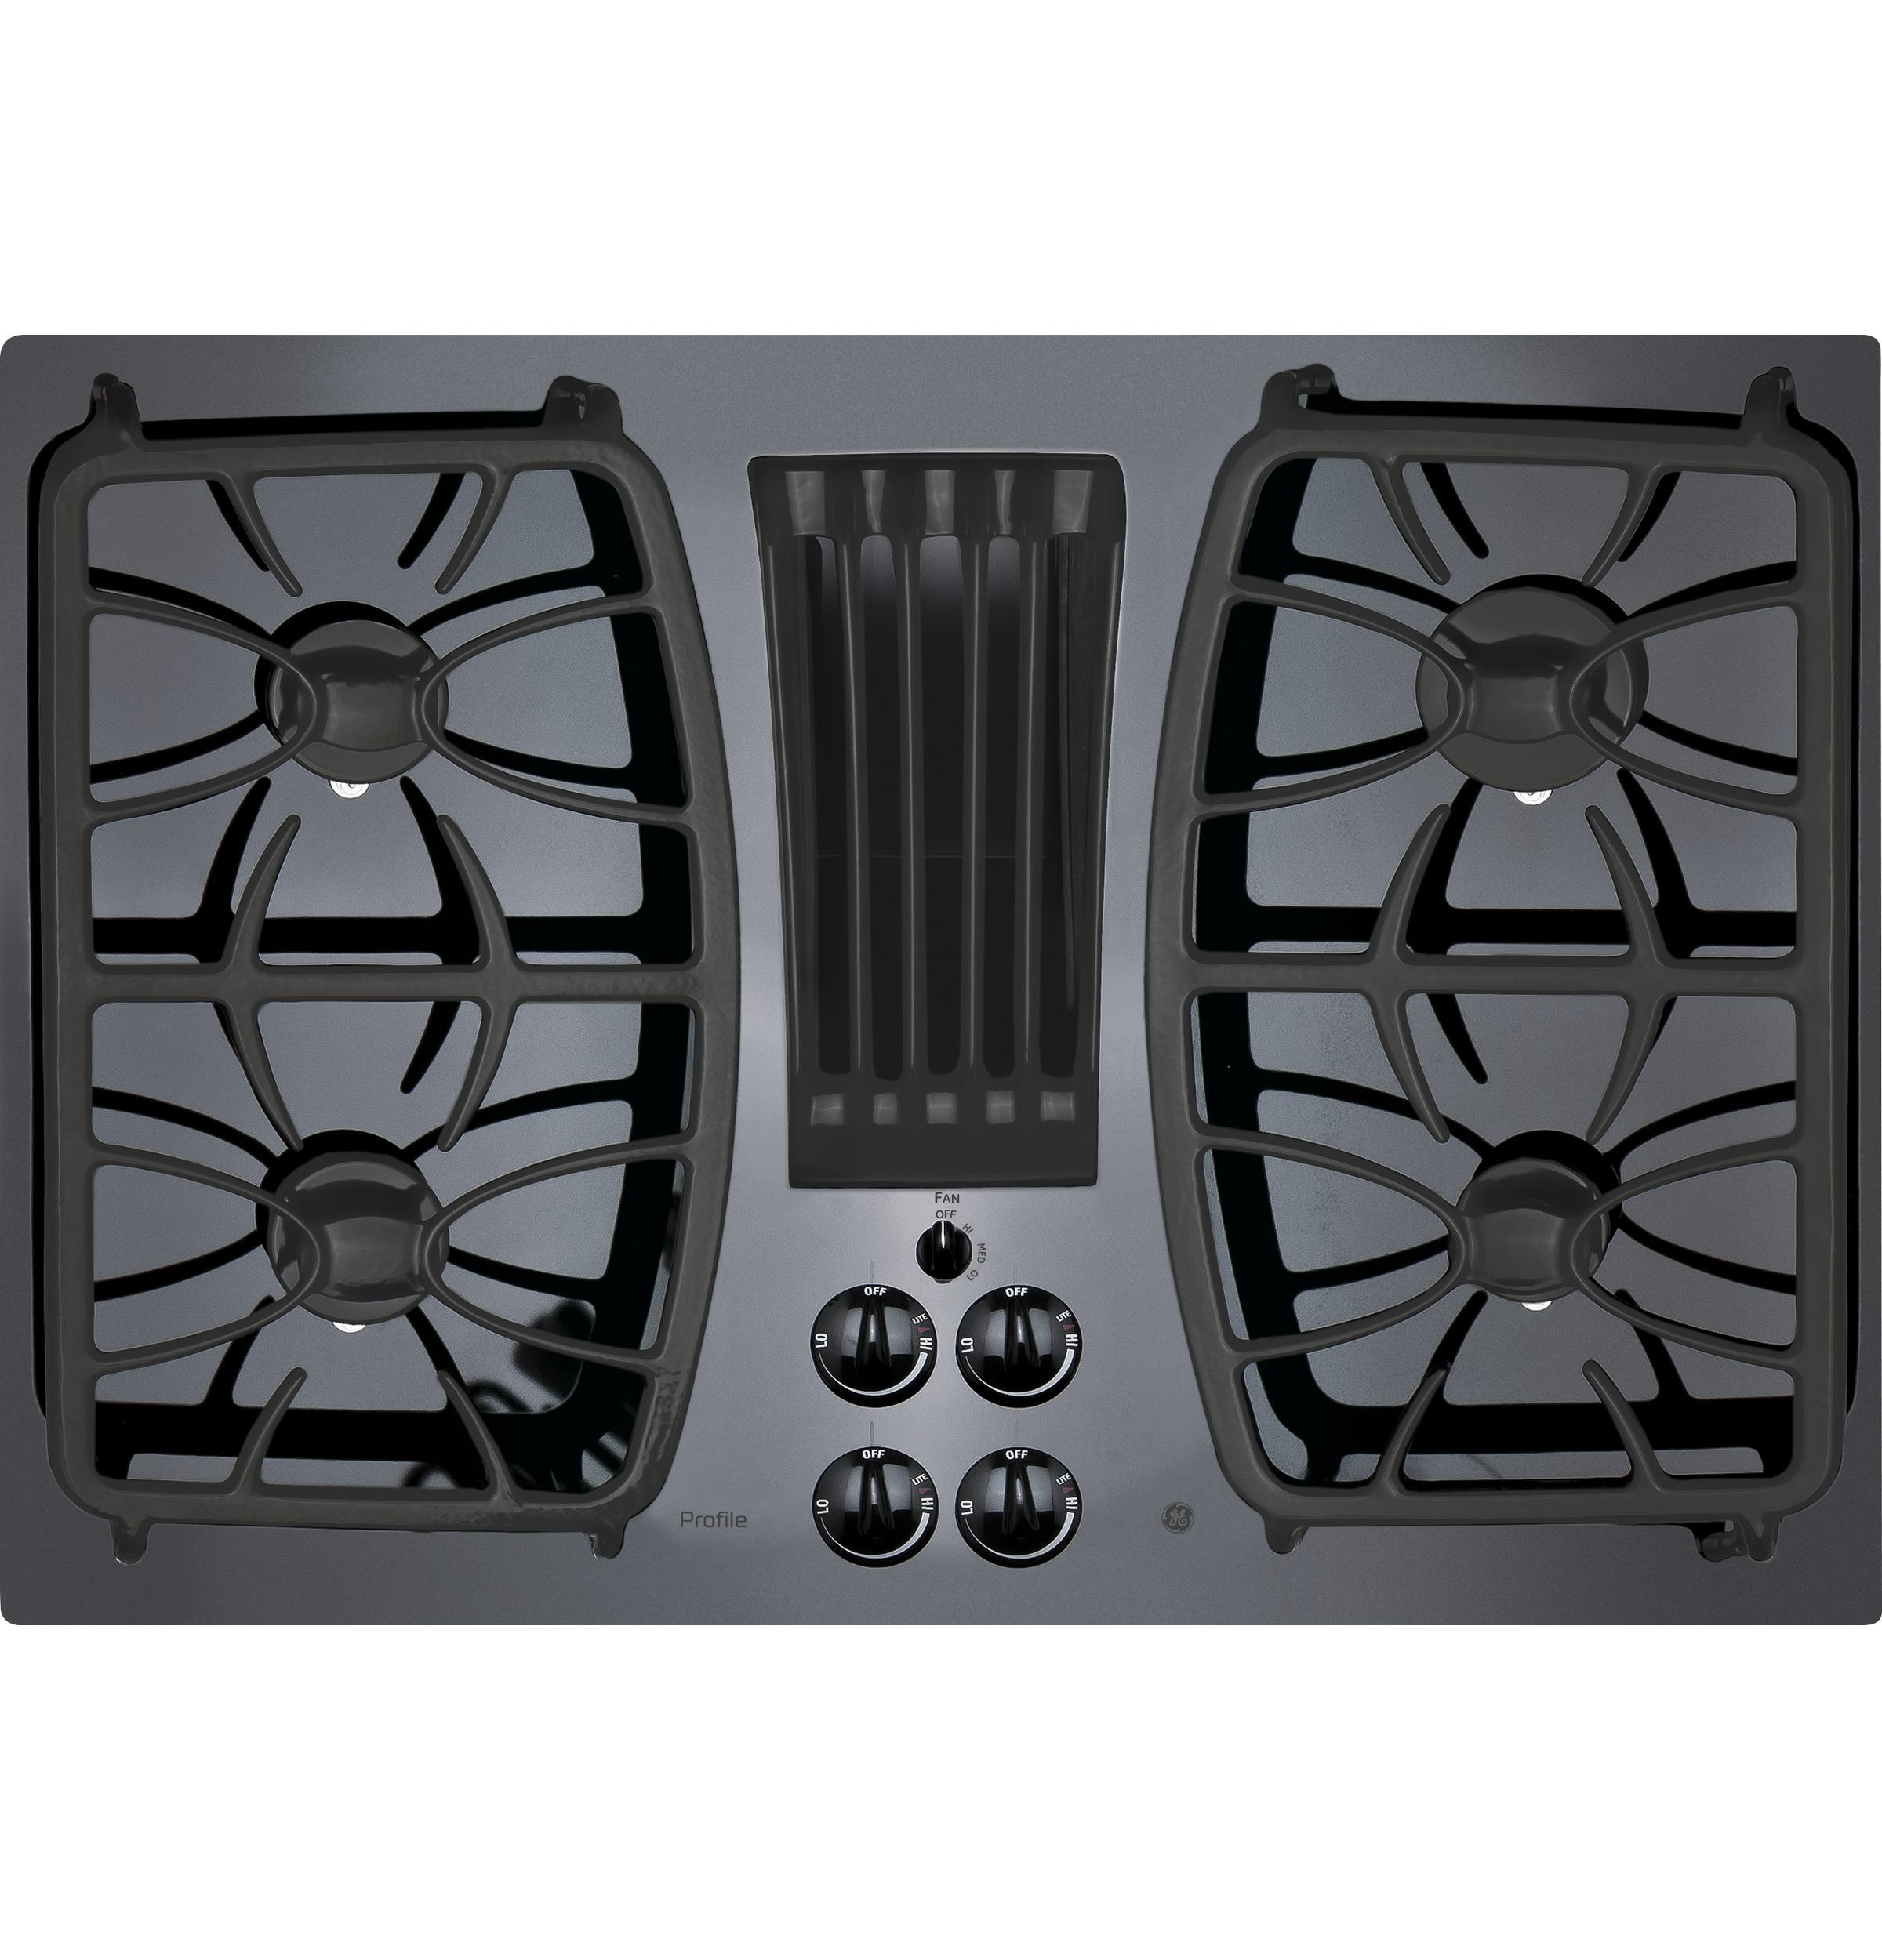 "GE Profile(TM) Series 30"" Built-In Gas Downdraft Cooktop